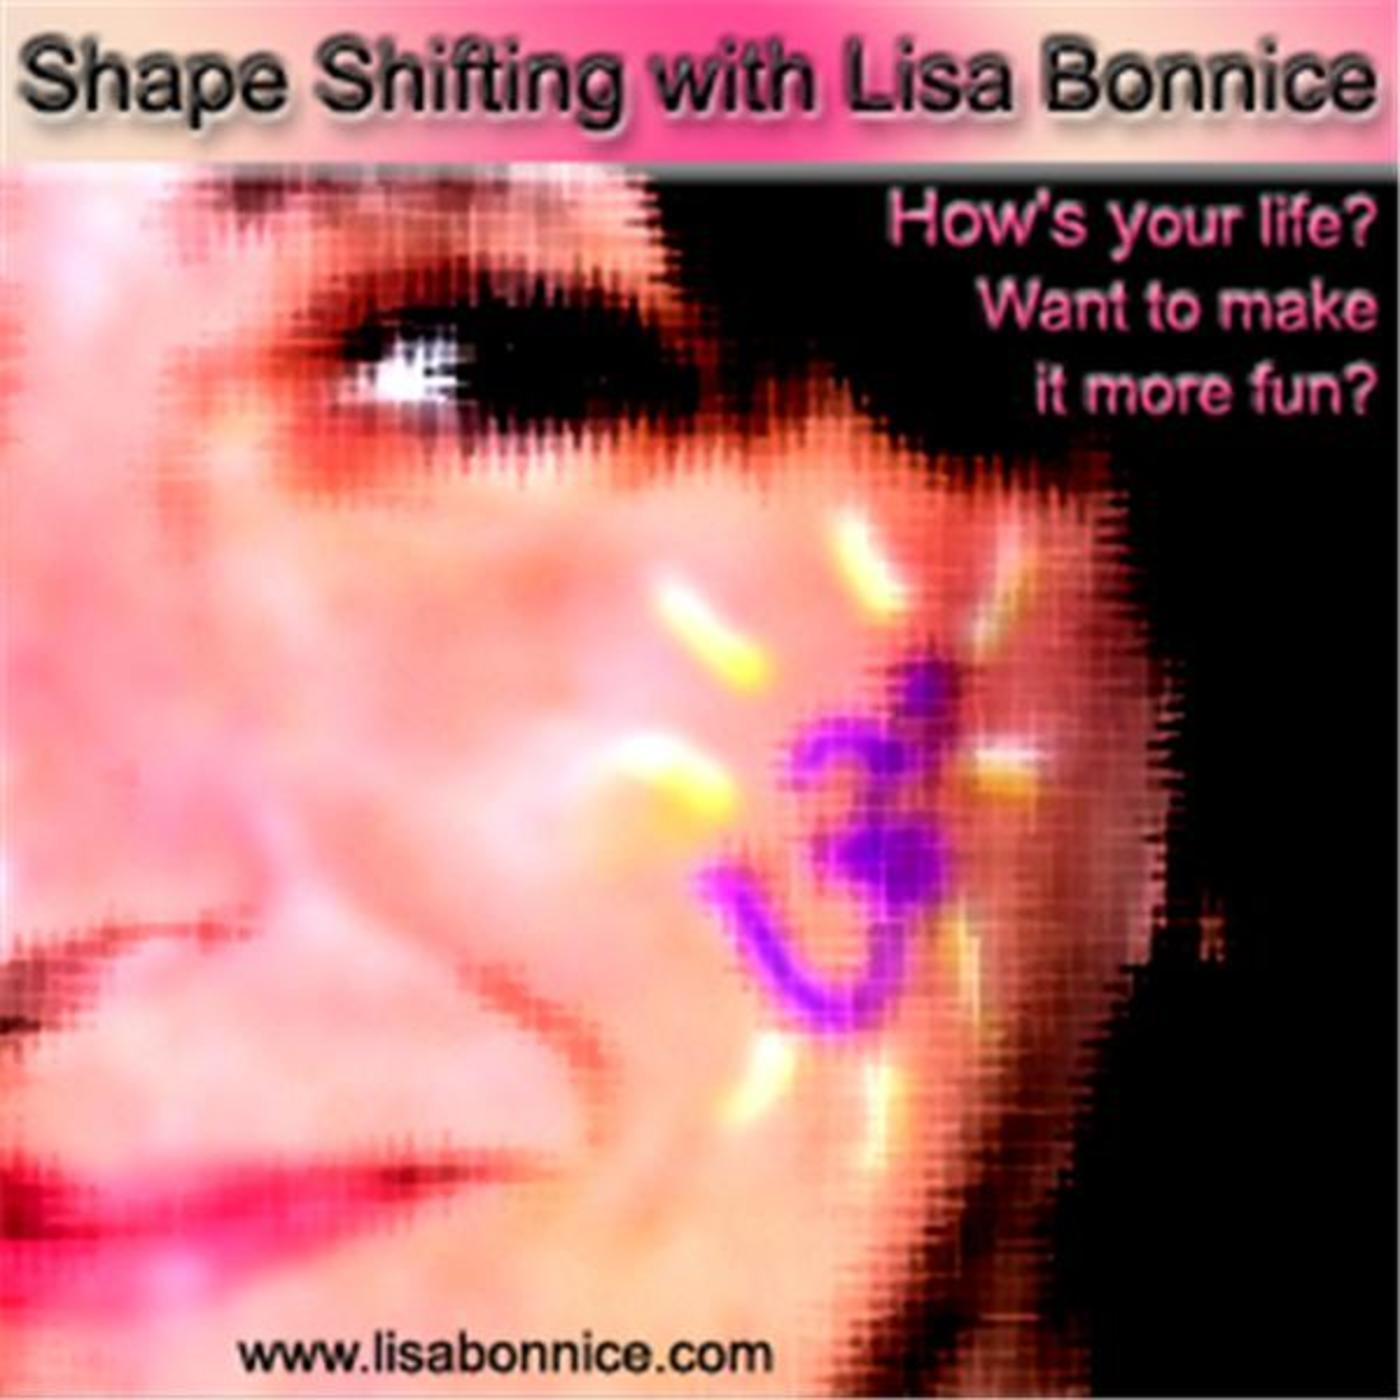 Shape Shifting with Lisa Bonnice